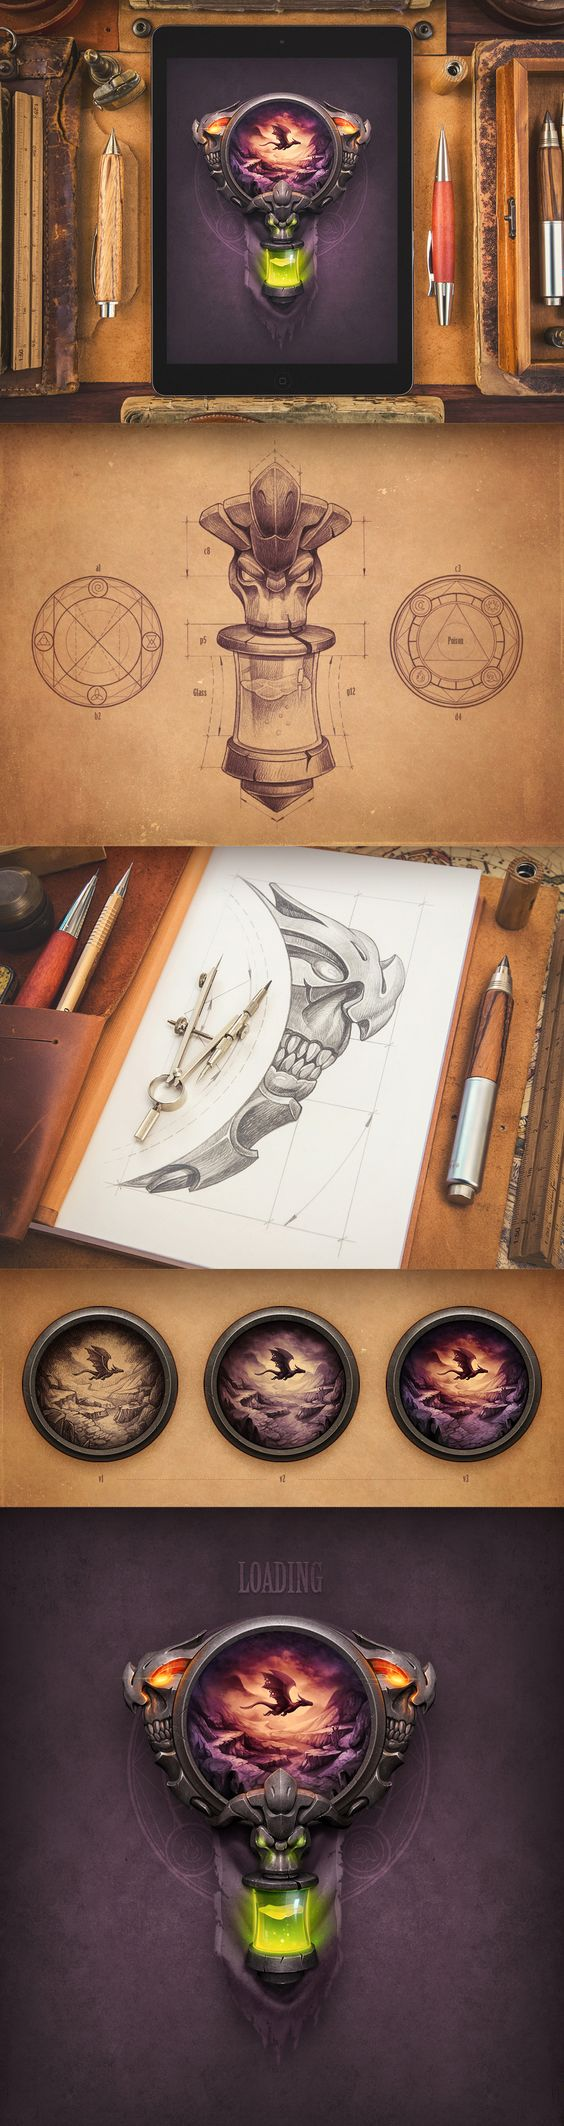 Dribbble - loading_-_rpg_game.jpg by Mike | Creative Mints